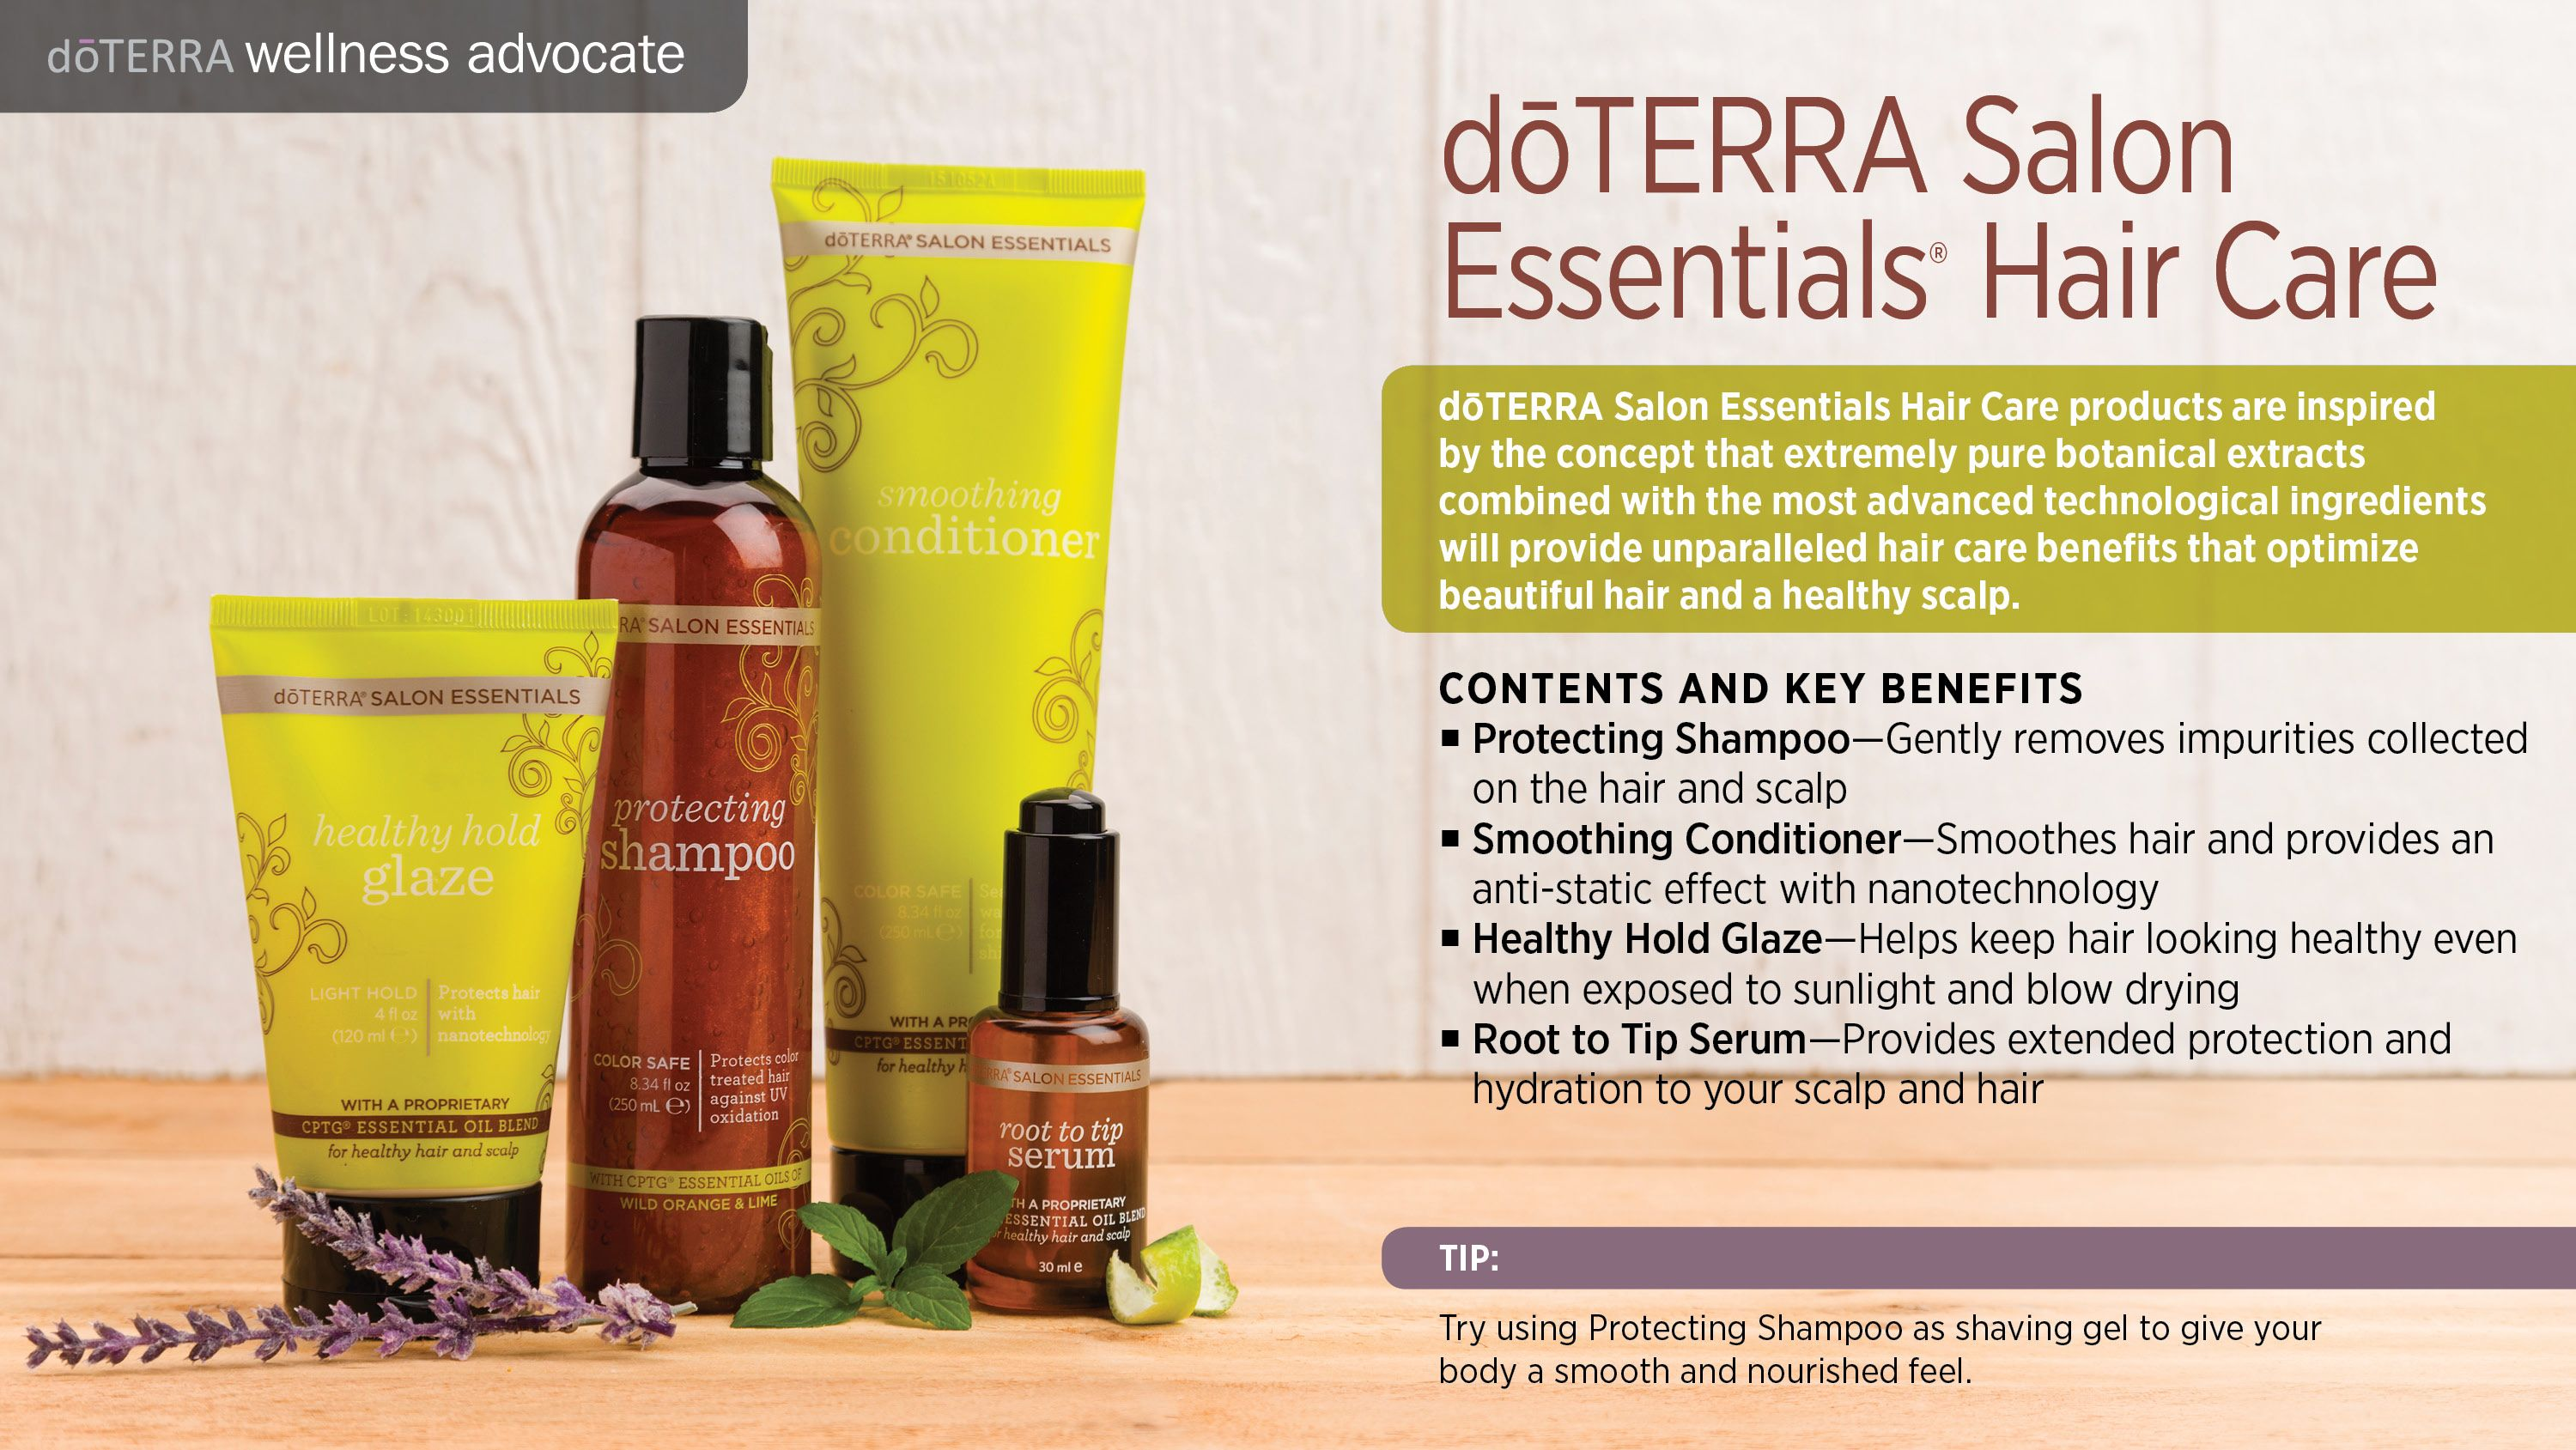 Wa salon essentials hair jpeg image 3000 1689 for Hair salon perfect first essential